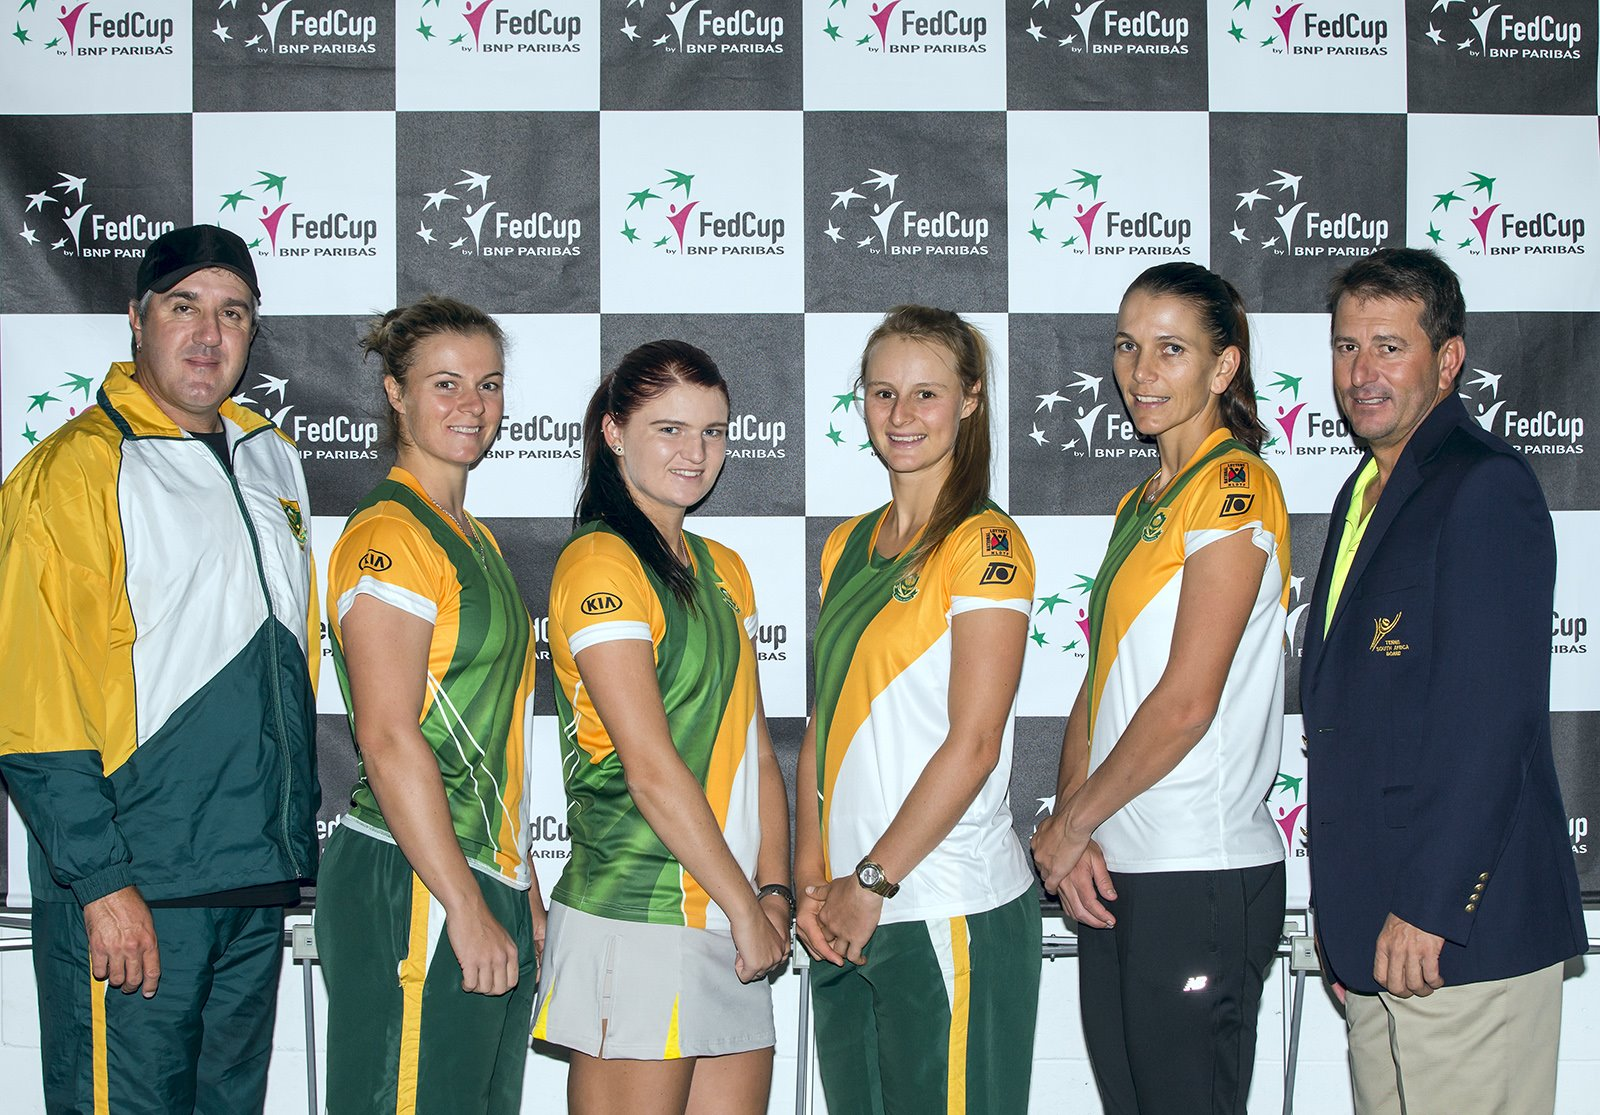 SA flatten Finland to win Fed Cup promotion